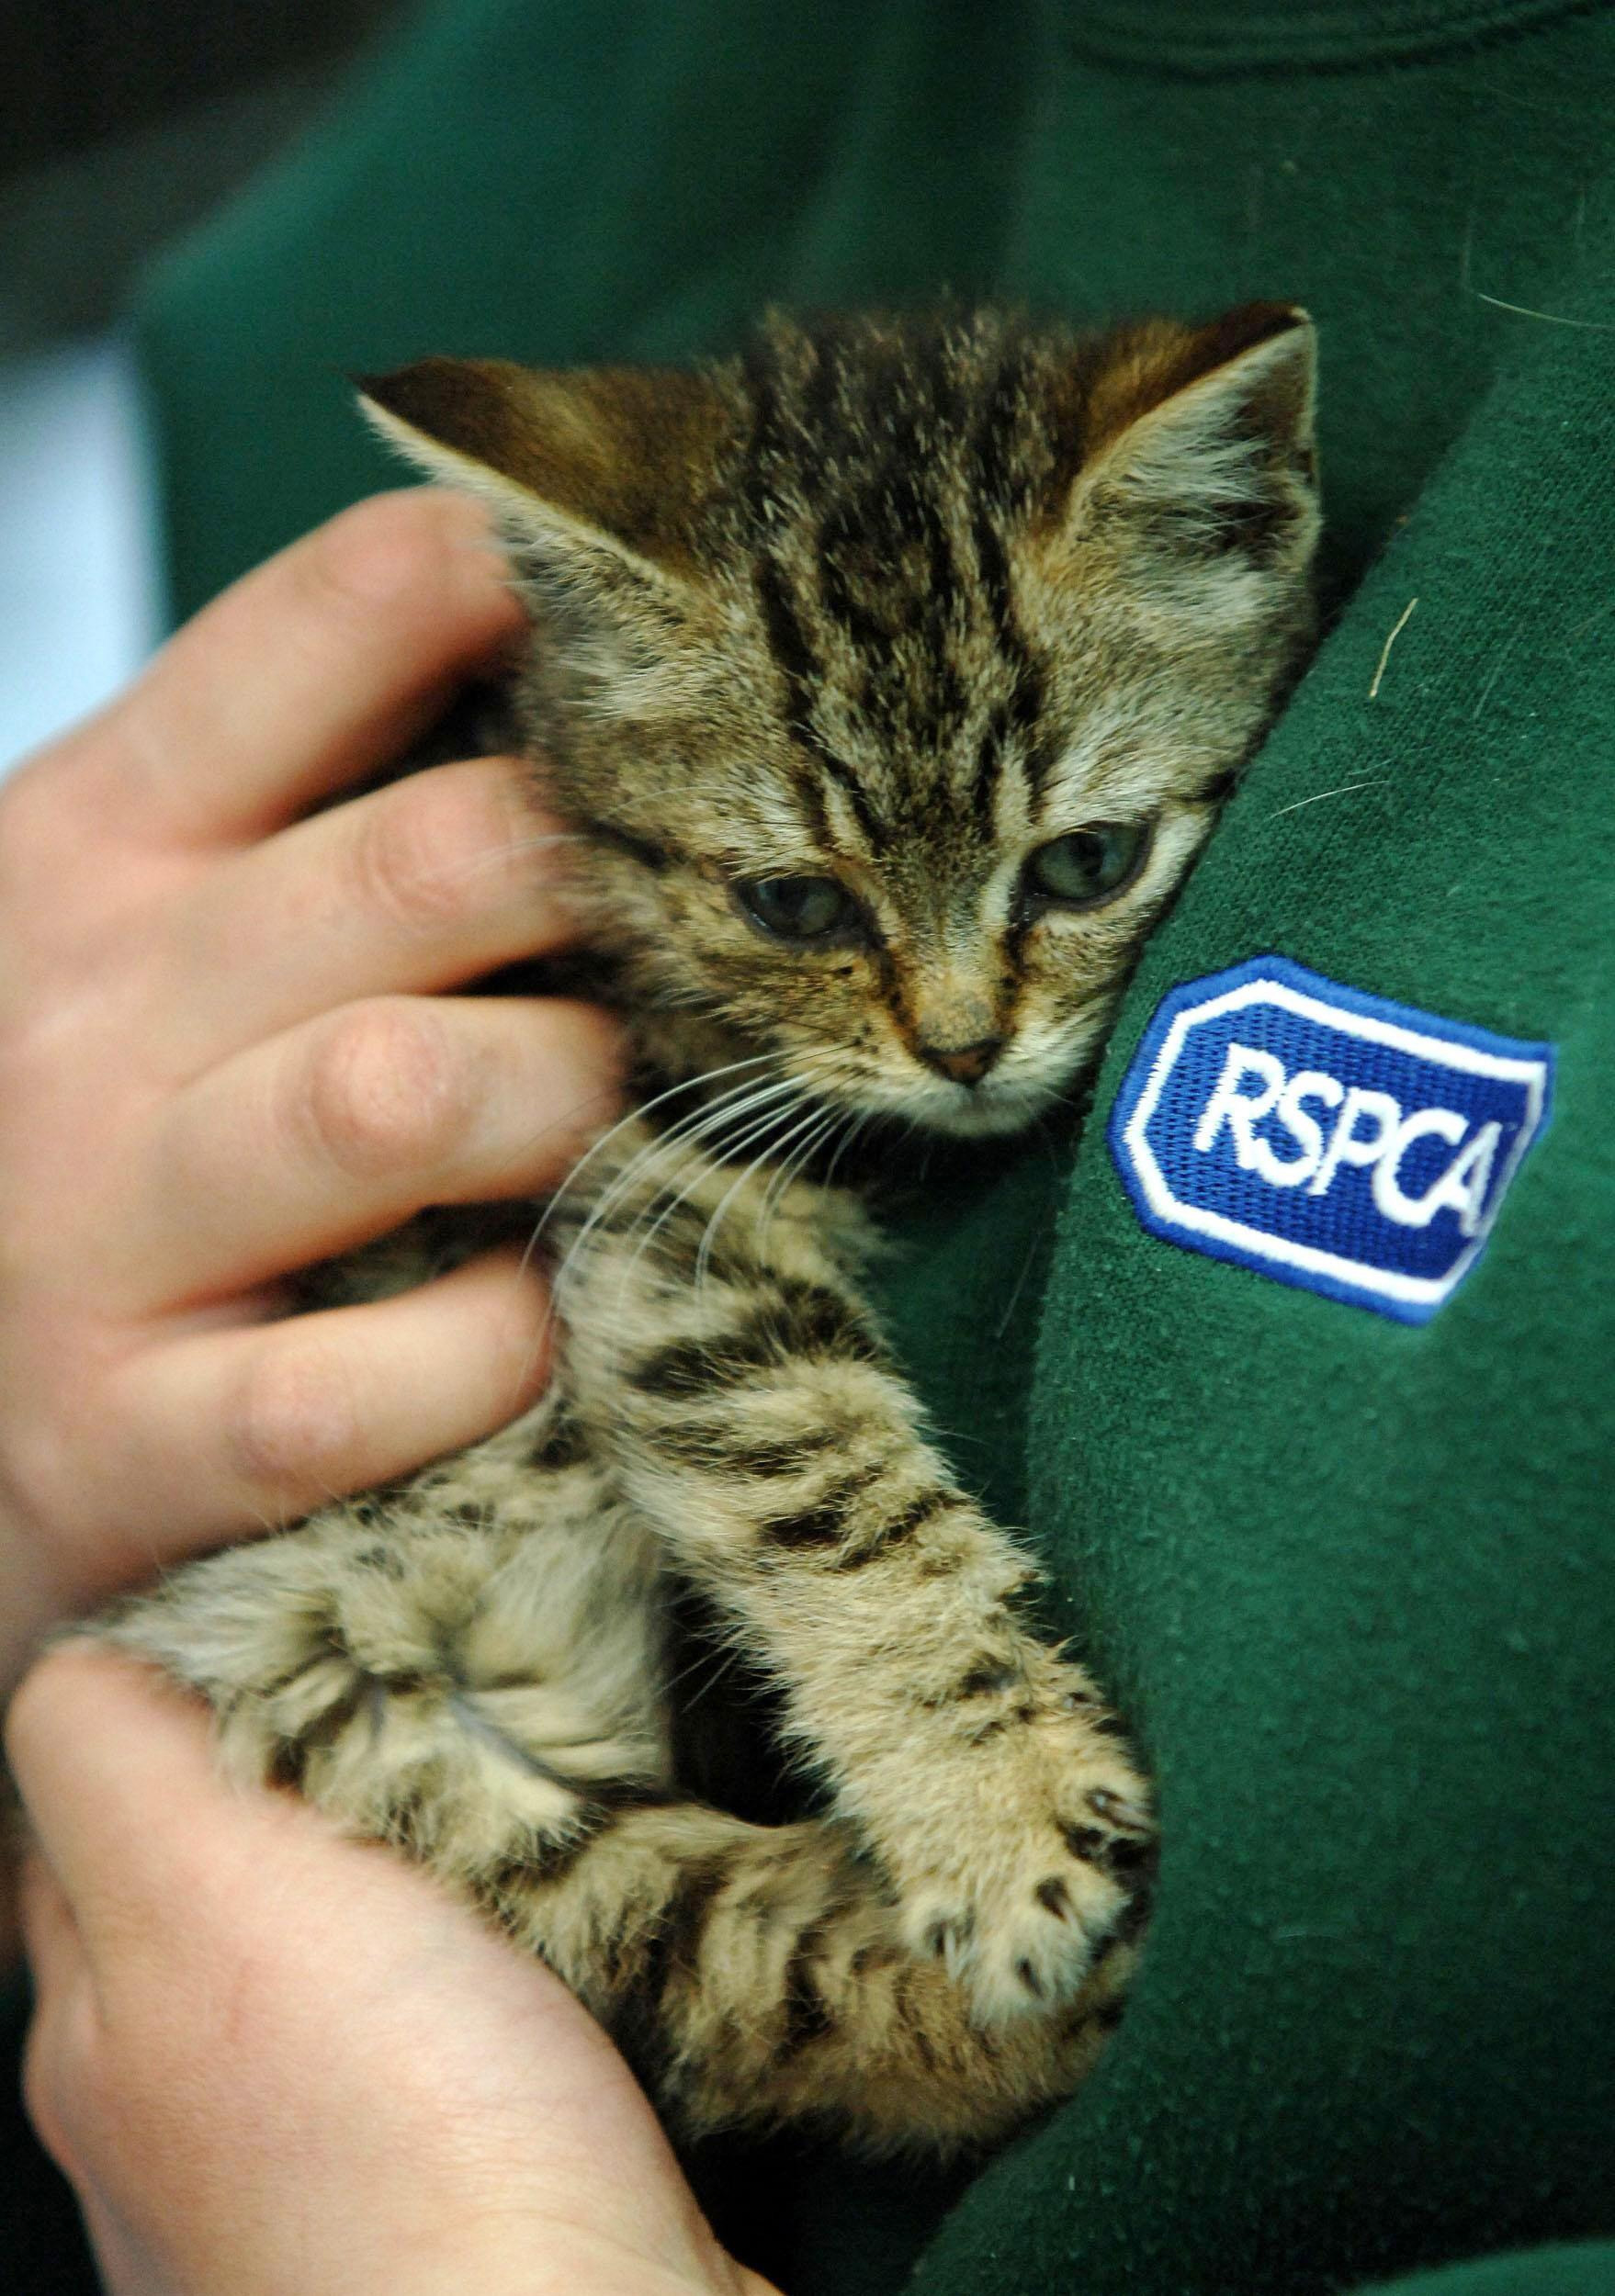 APPEAL FOR HELP: An abandoned kitten with an RSPCA officer